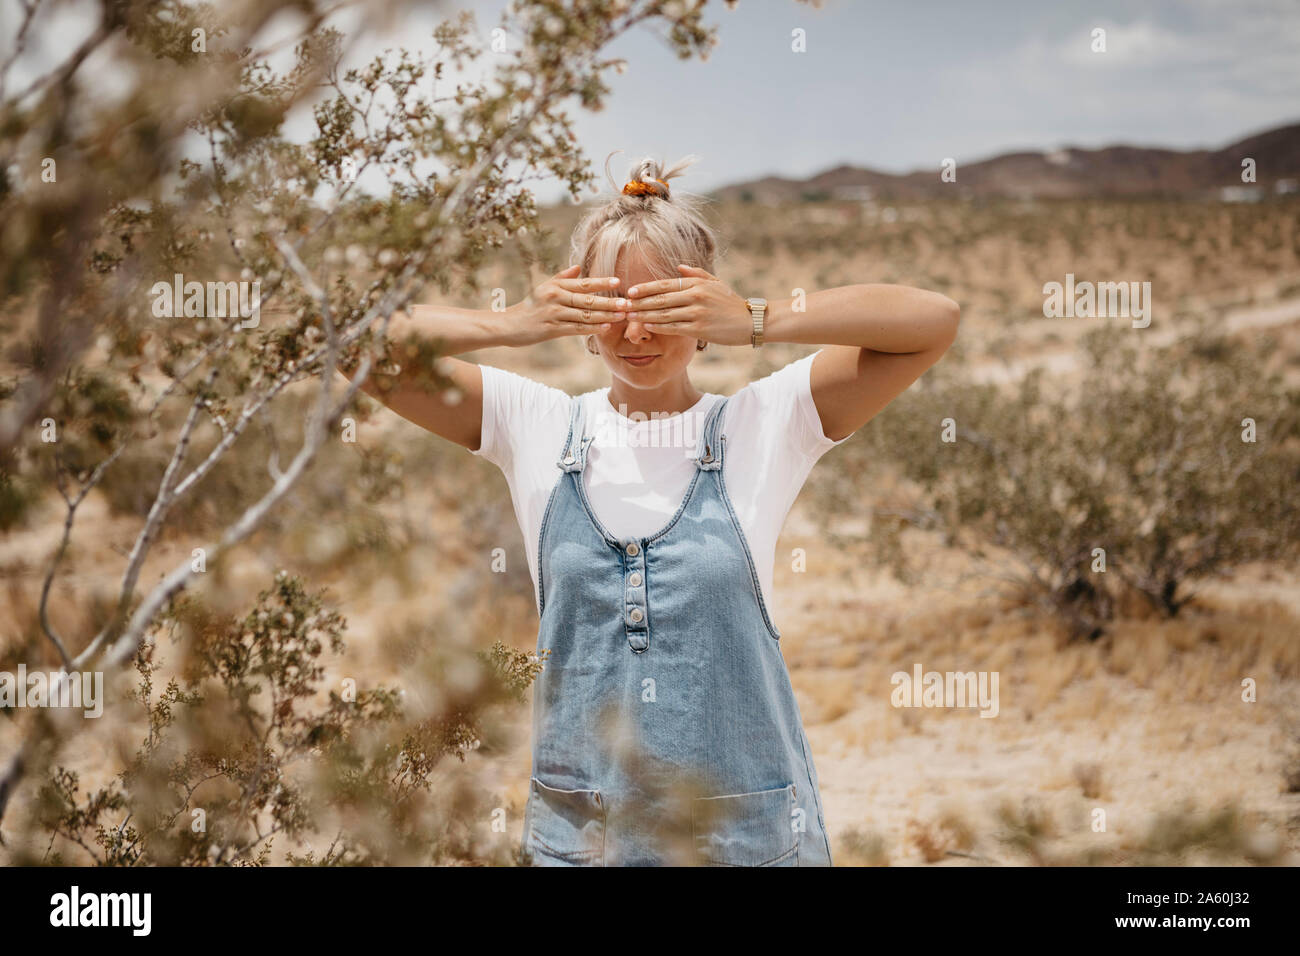 Young woman standing in desert landscape, Joshua Tree National Park, California, USA Banque D'Images